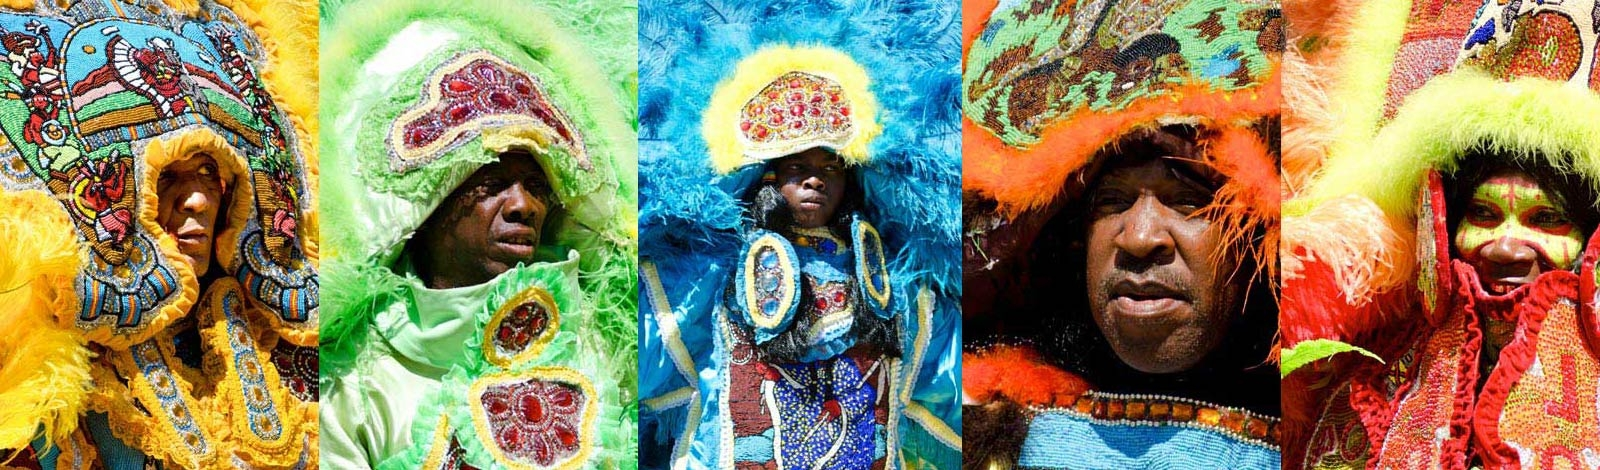 Martin Luther King Parade 2020 New Orleans Mardi Gras Indians Super Sunday   Mardi Gras New Orleans